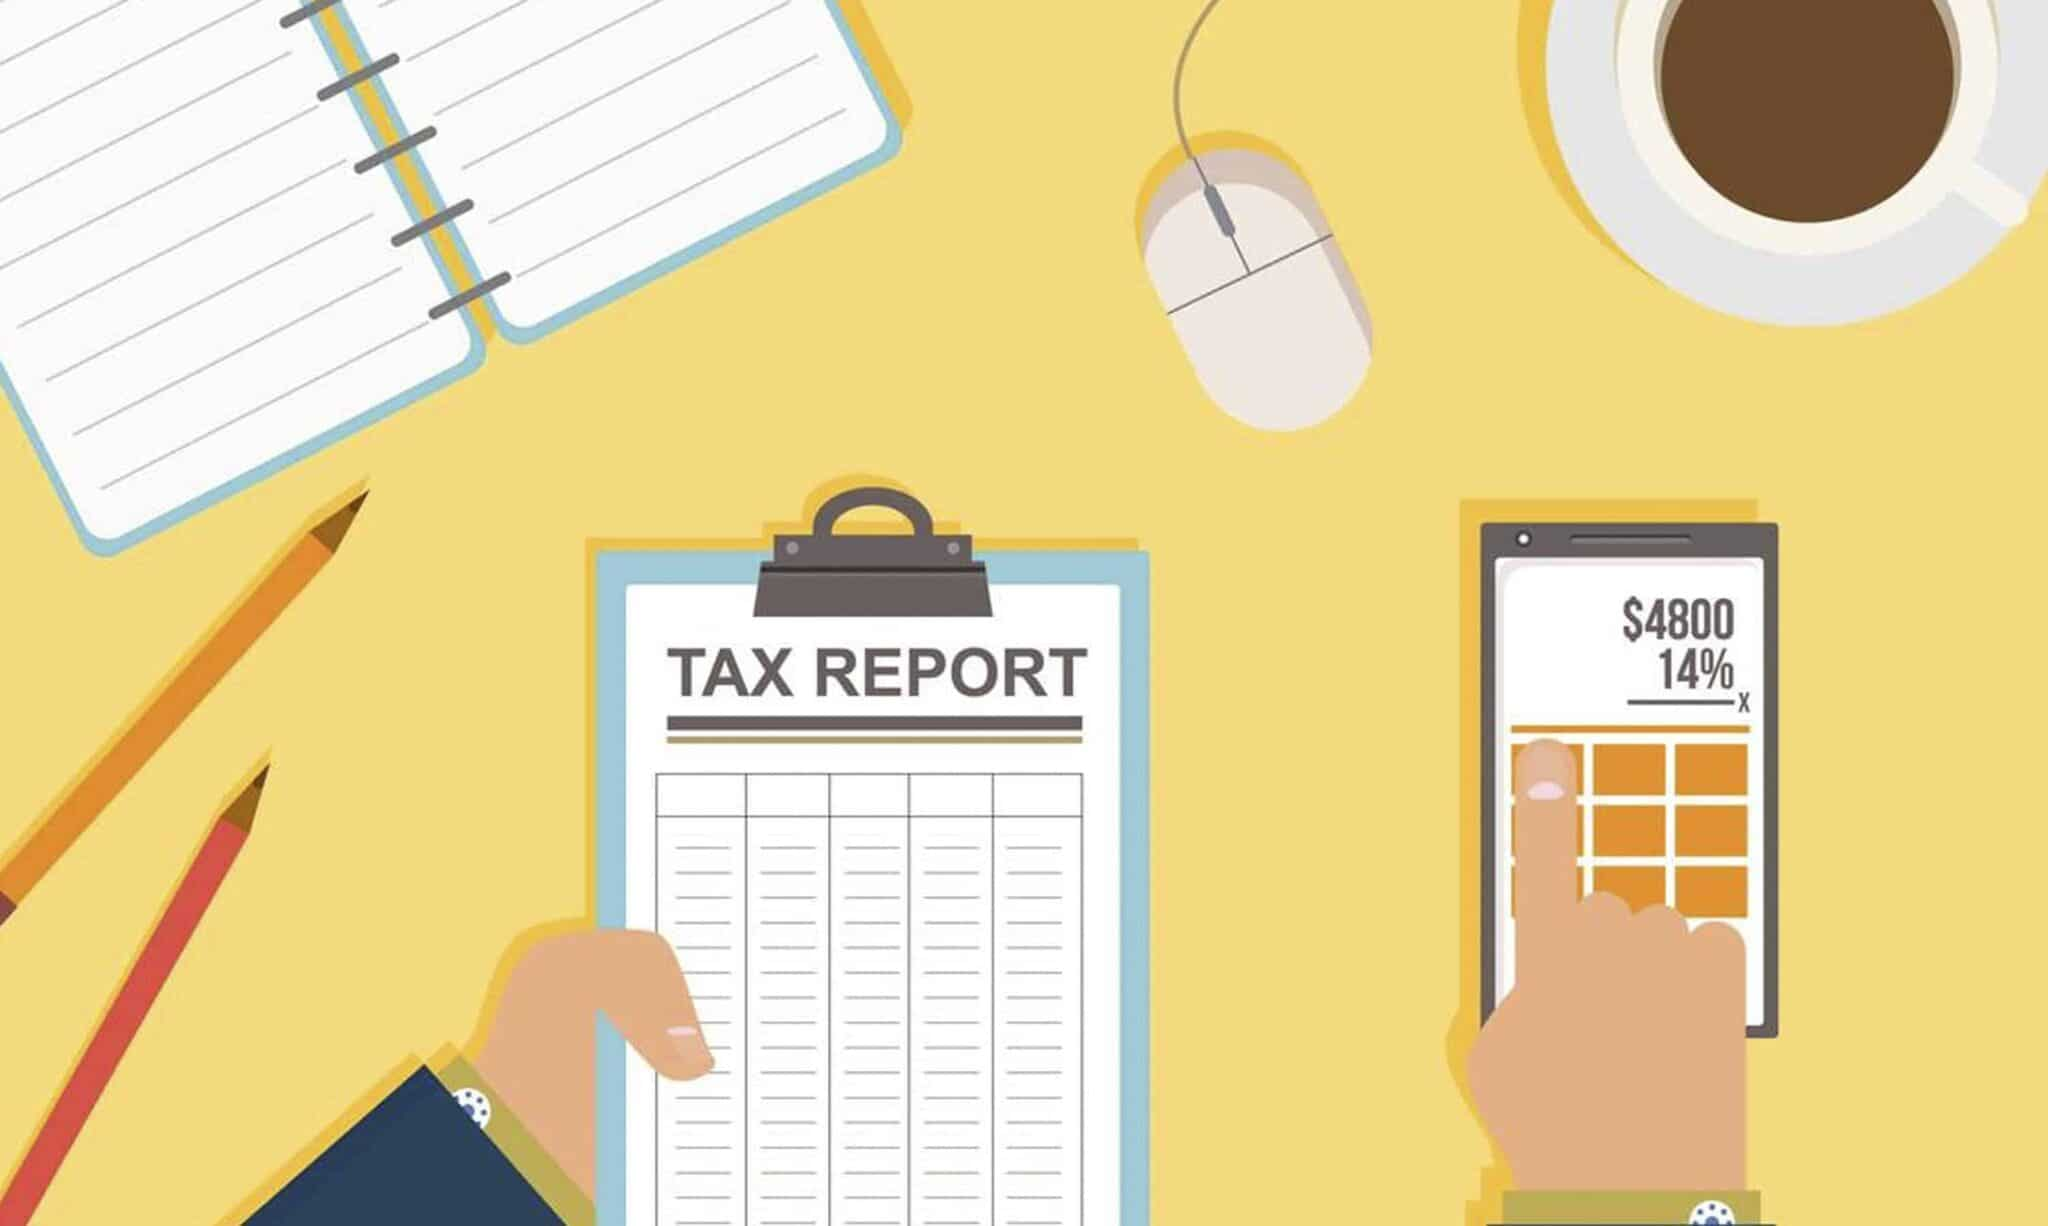 Diy Free Tax Review Should You Pay For Audit Protection For Your Taxes The College